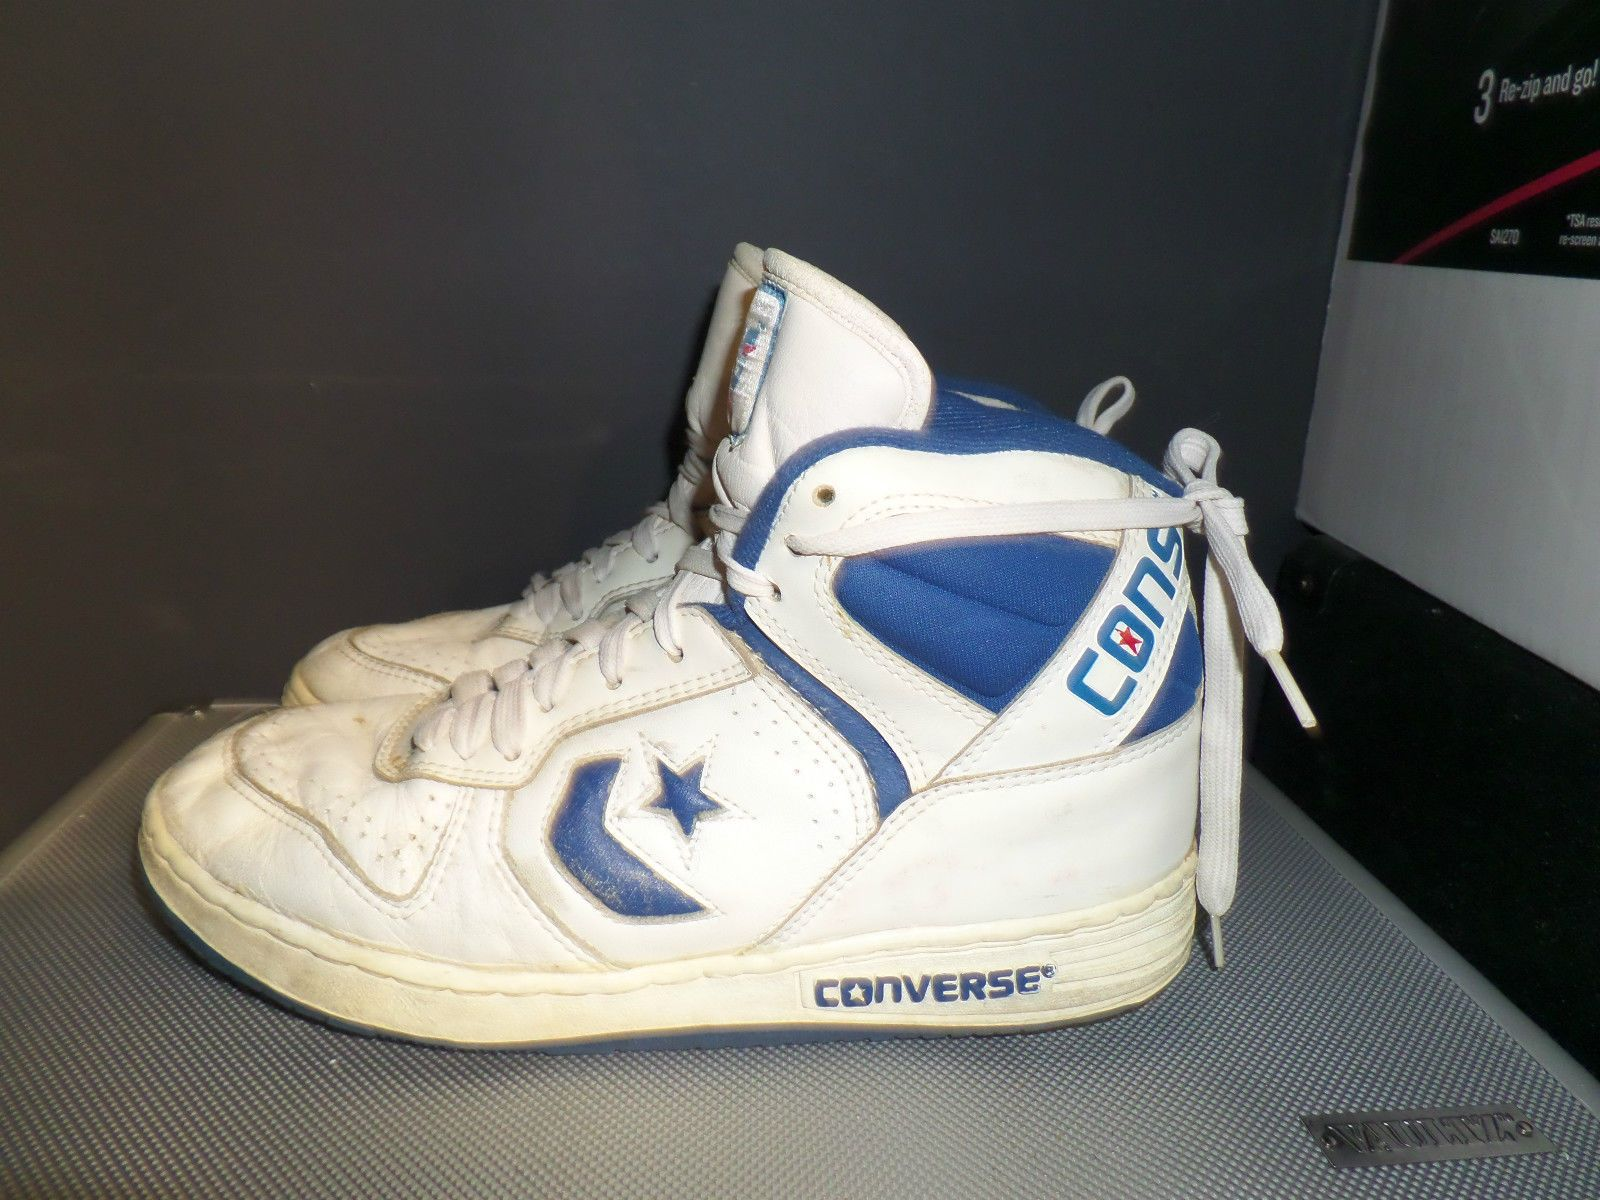 High tops · Converse Shoes Vintage Deadstock Cons 8 Leather White Royal  Blue 80s Size 8 5 | eBay